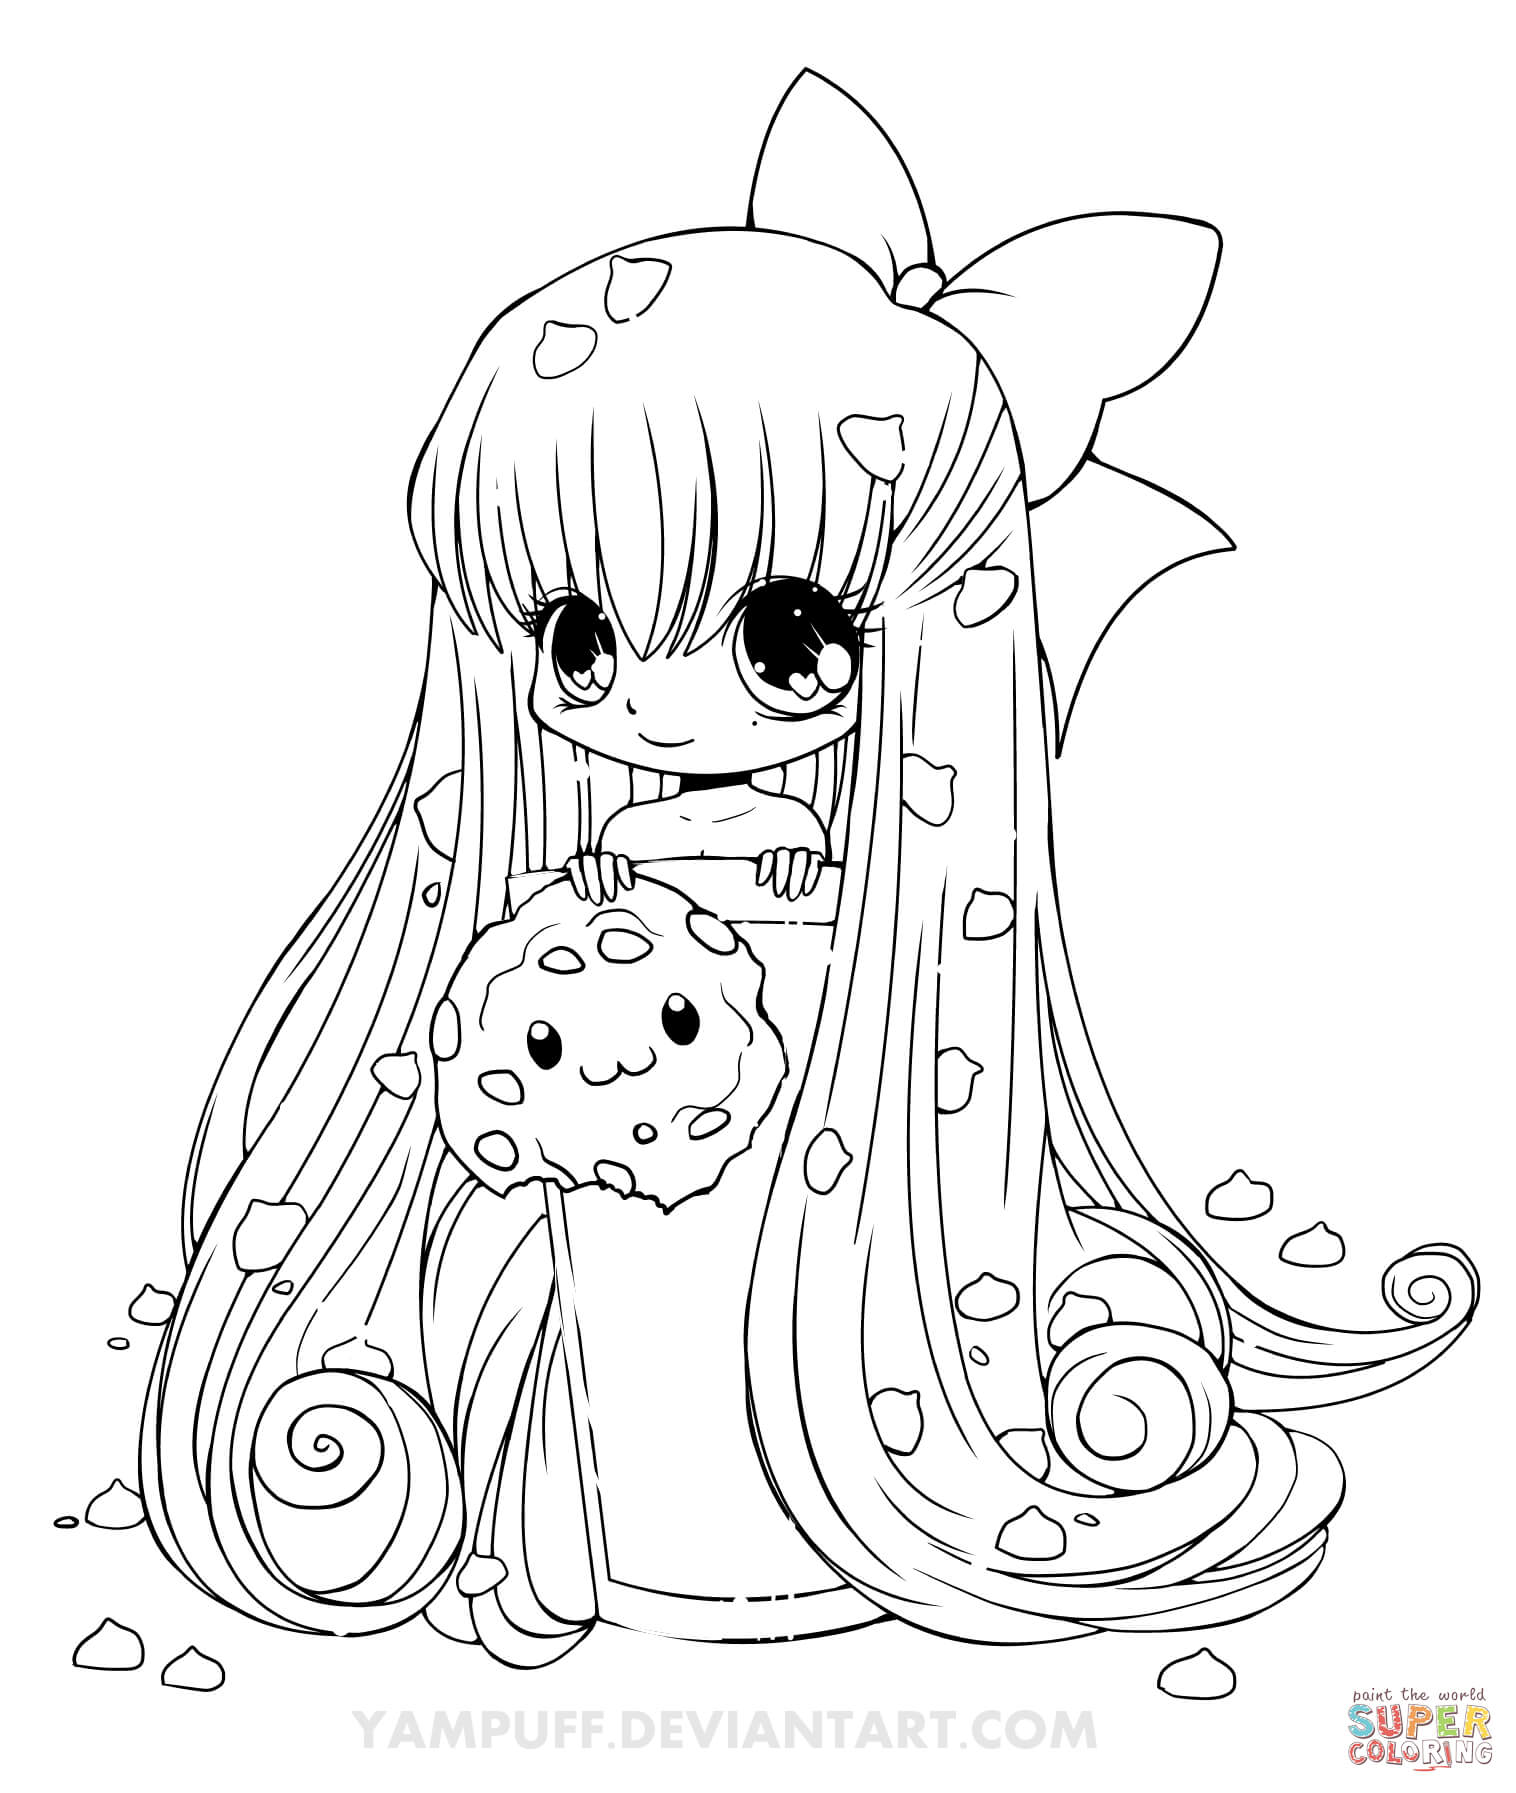 Chibi Cupcake Girl Coloring Page Free Printable Coloring Pages